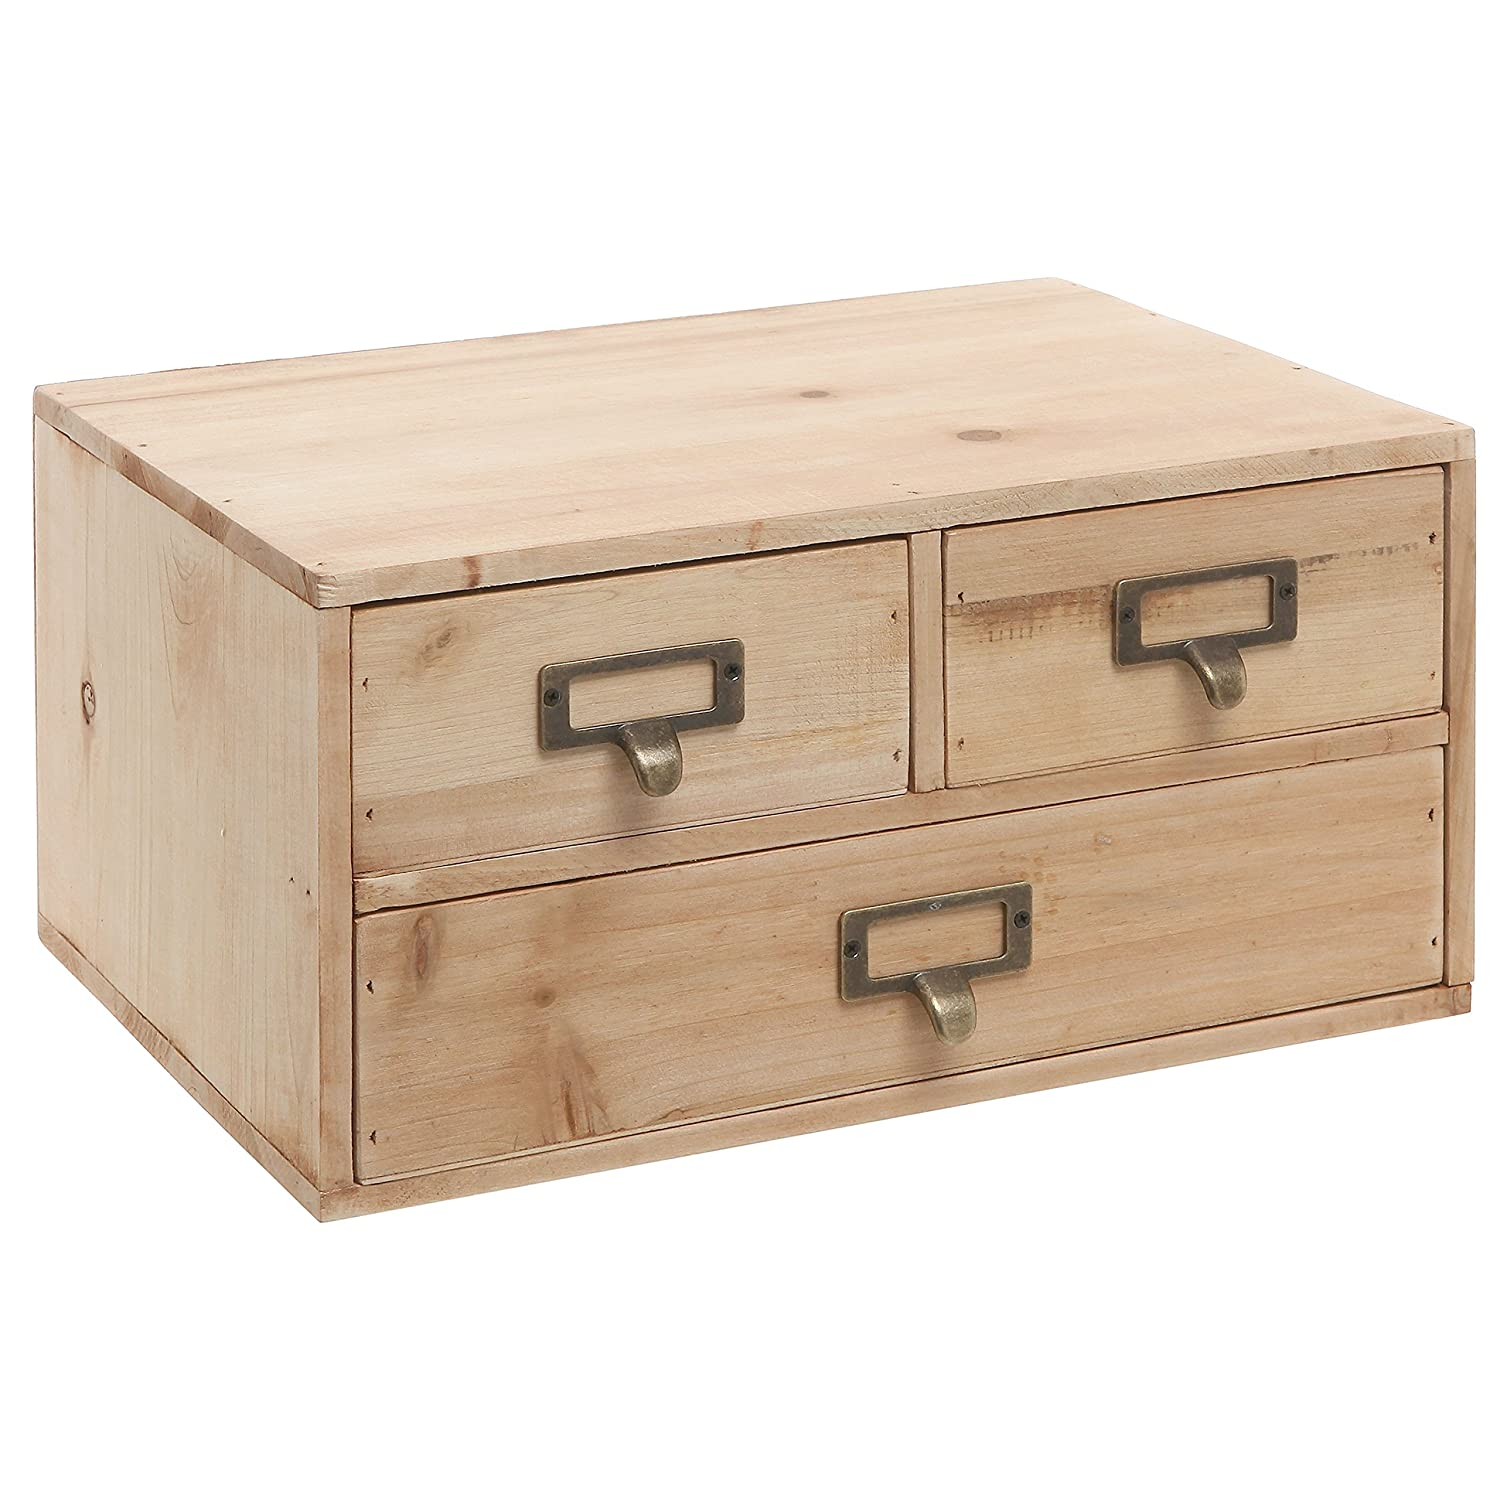 Great Amazon.com: Small Natural Wood Office Storage Cabinet / Jewelry Organizer  With 3 Drawers   MyGift: Kitchen U0026 Dining Part 27